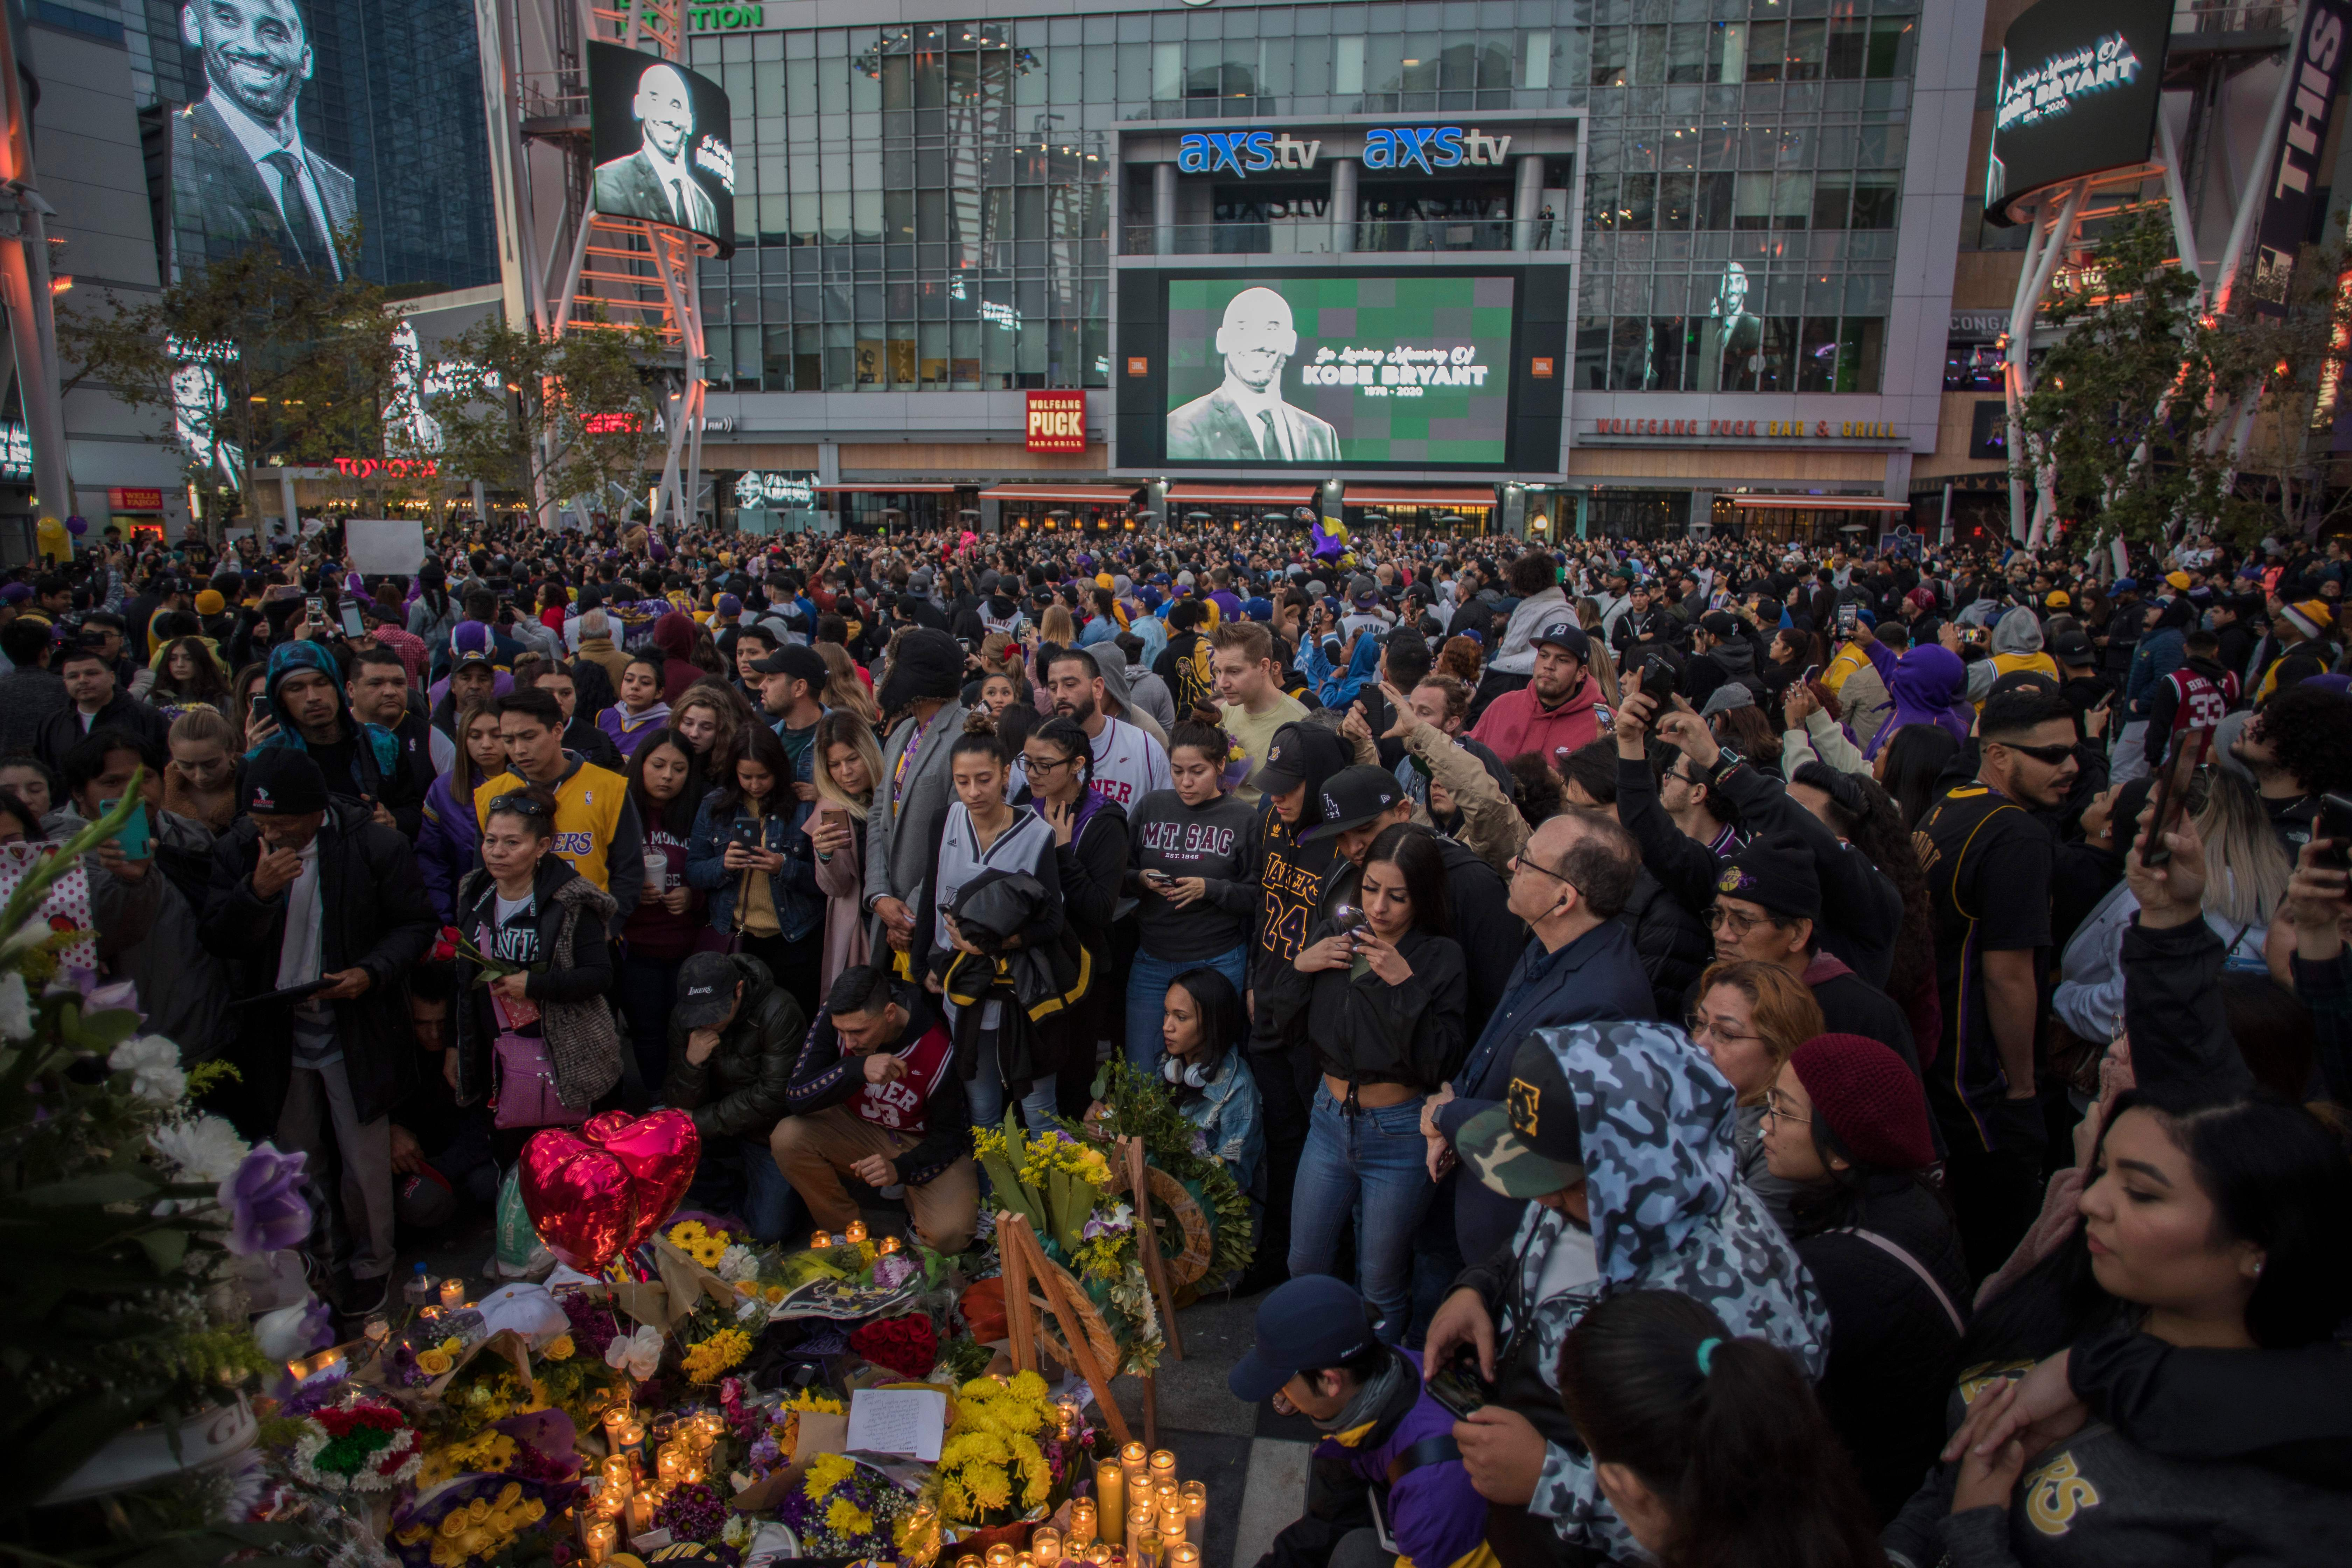 People gather around a makeshift memorial for Kobe Bryant in front of Staples Center in Los Angeles on January 26, 2020.